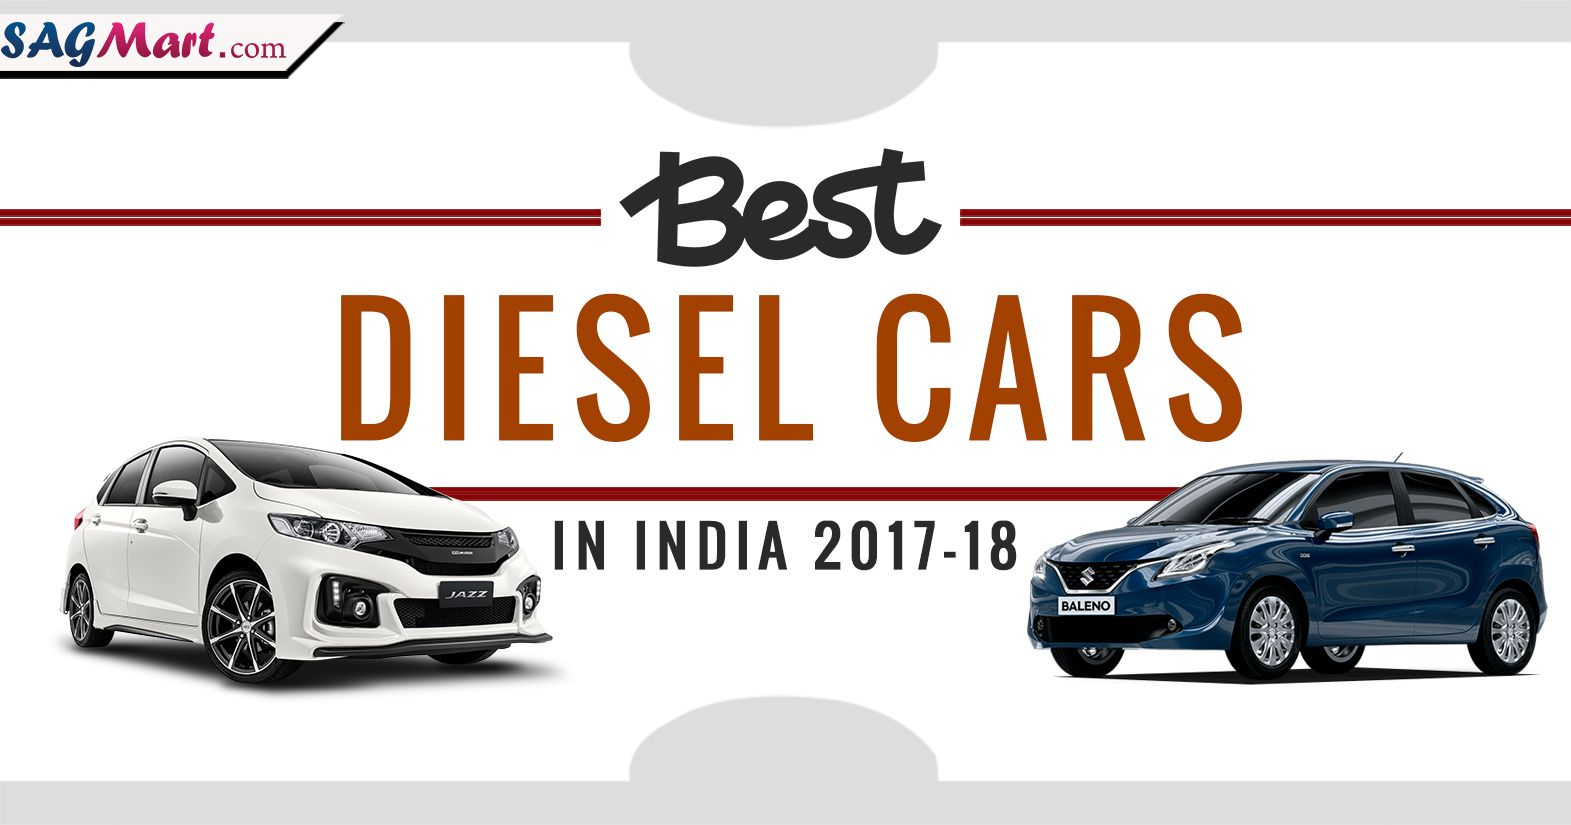 Get The All Information About Diesel Cars In India With Their